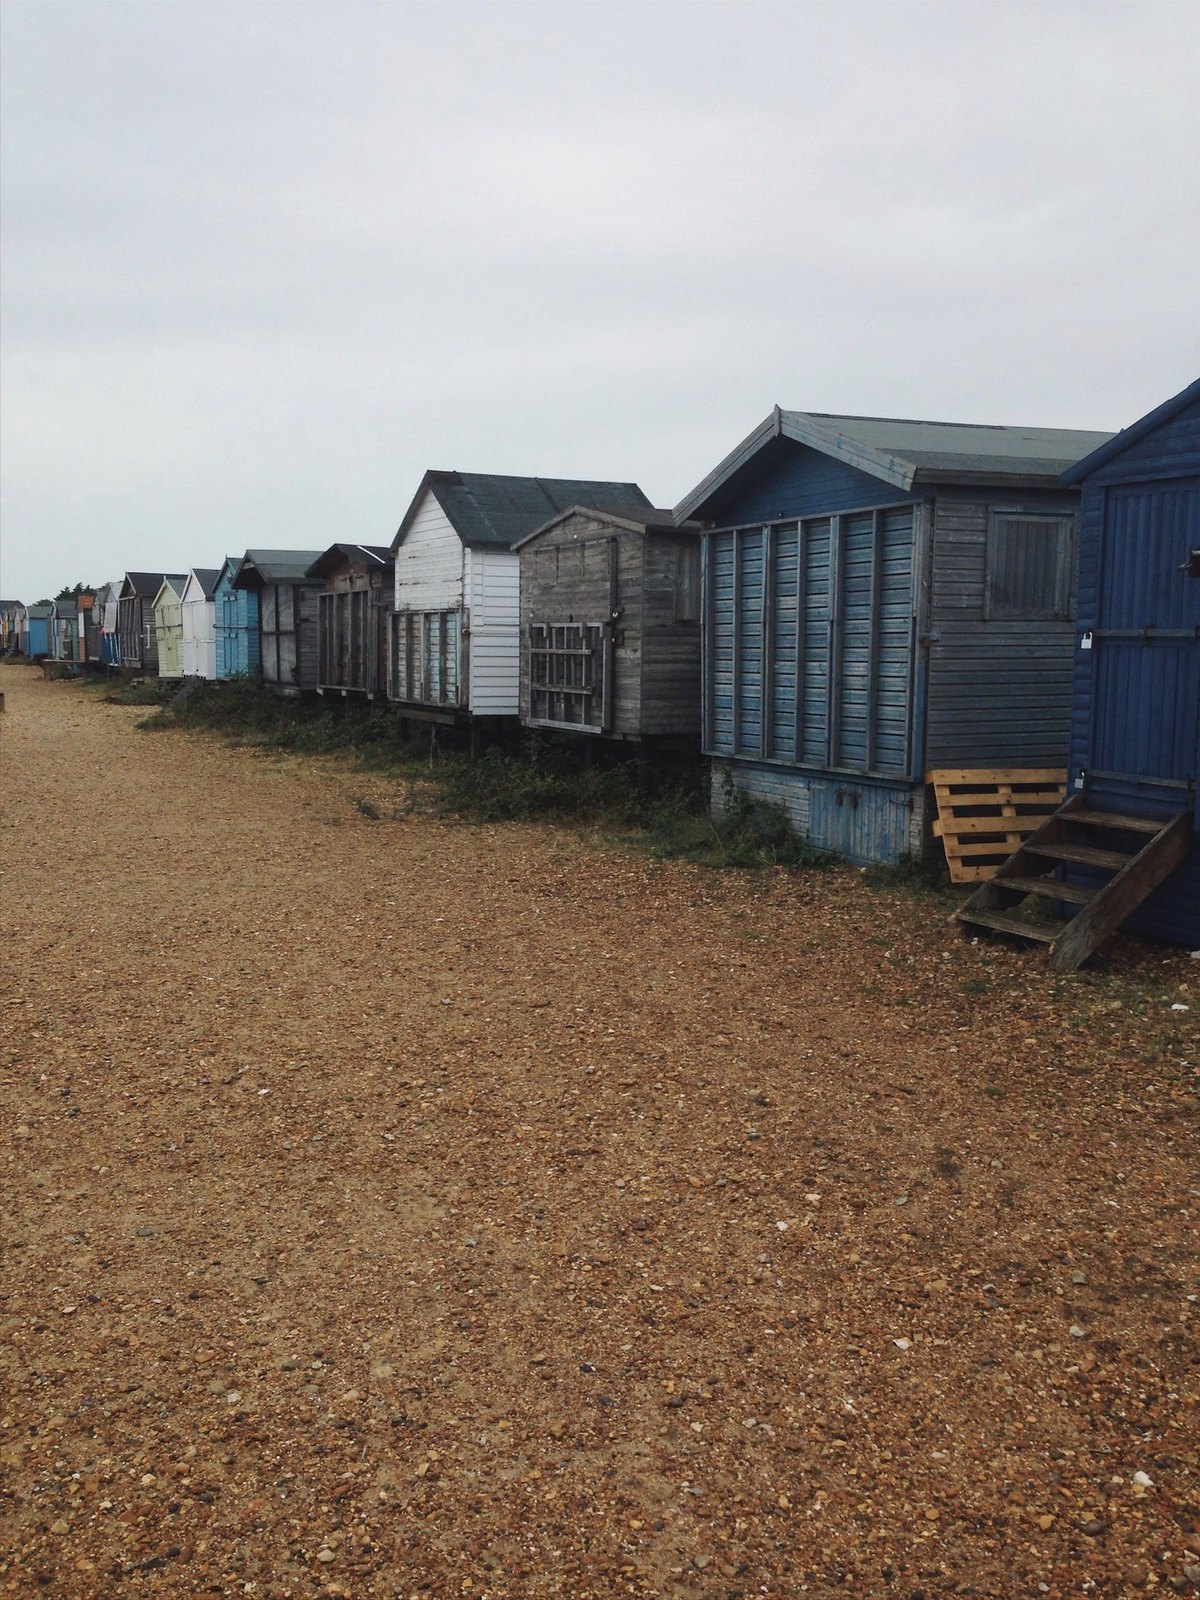 Beach Huts Faversham to Whitstable